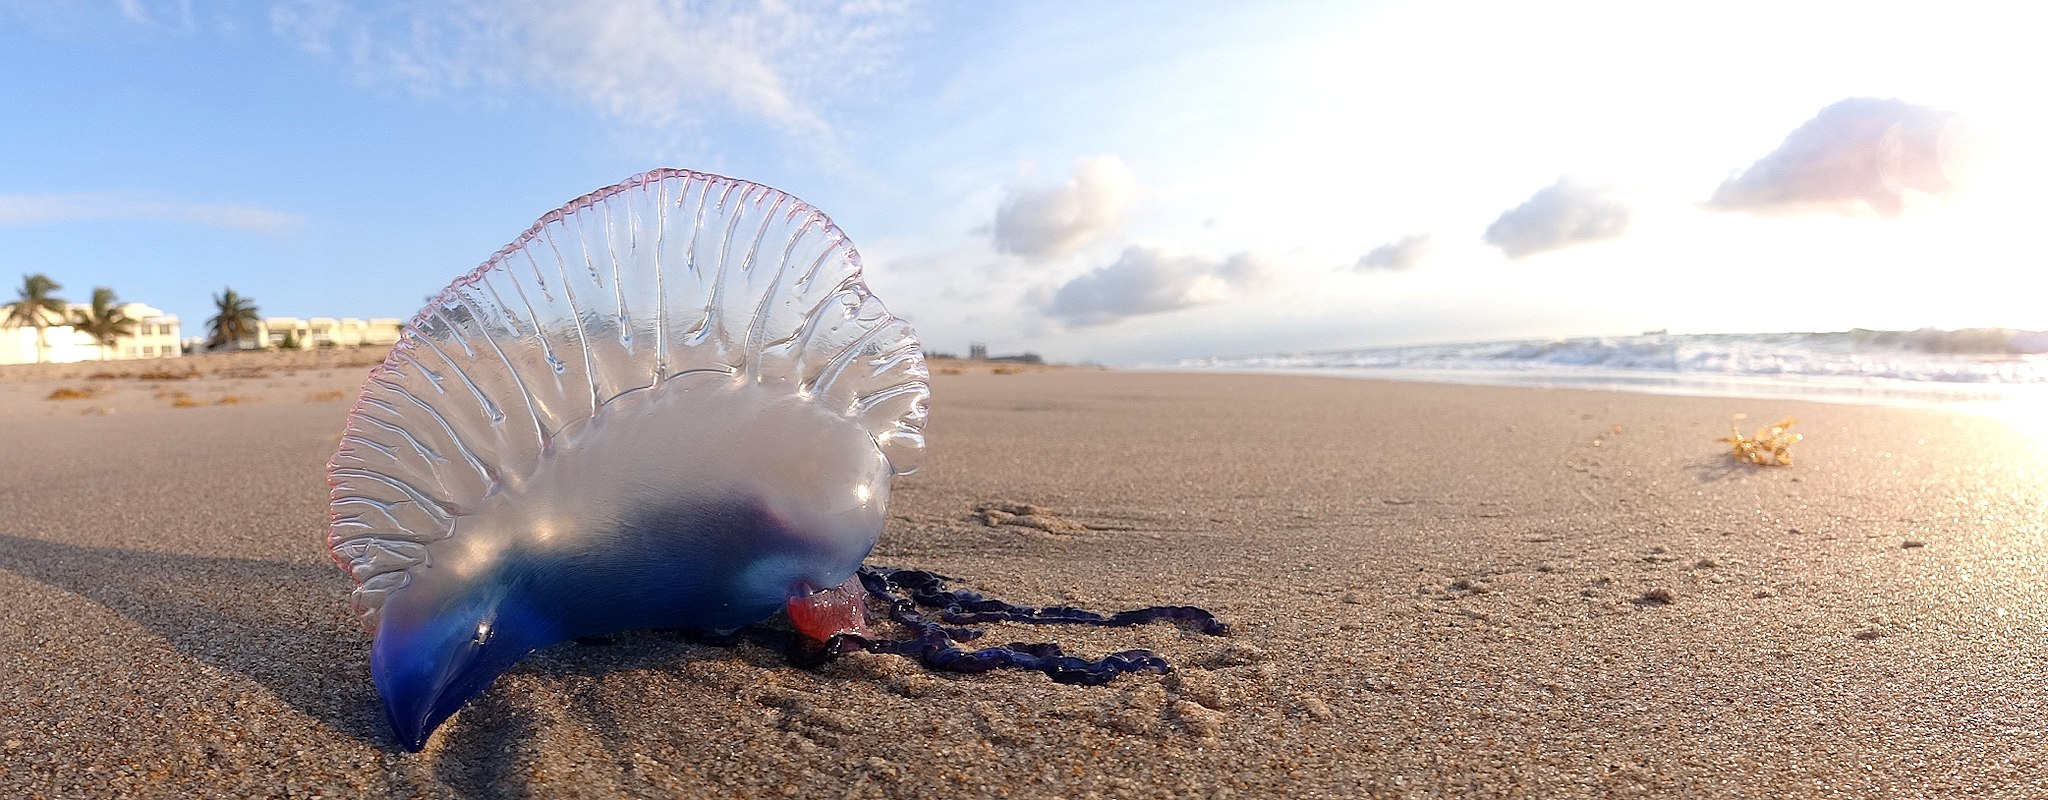 Qual – Qualle – Portuguese Man o' War at Palm Beach FL by Volkan Yuksel DSC05878